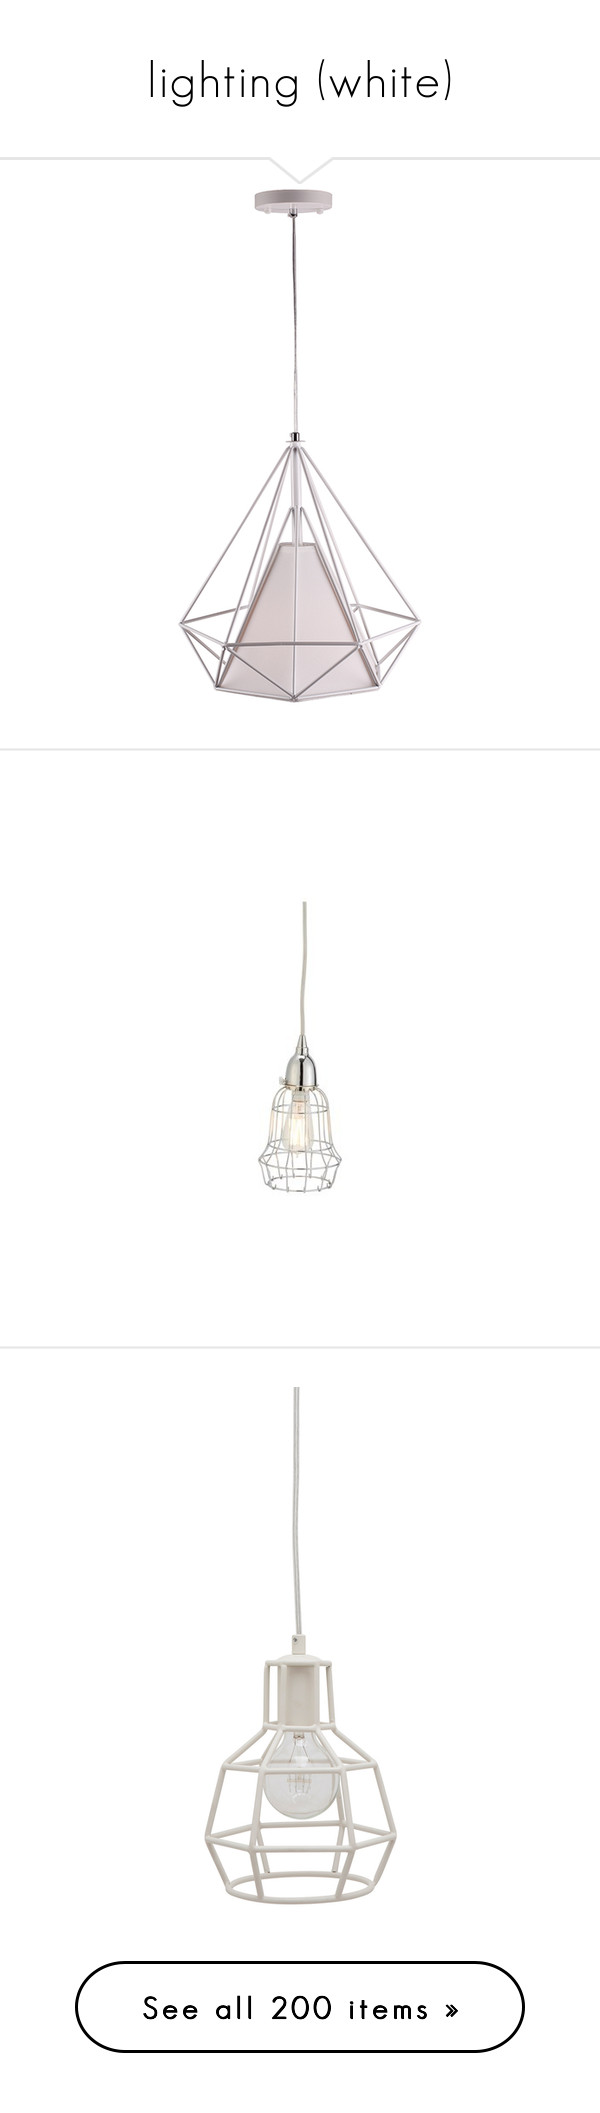 """""""lighting (white)"""" by papee ❤ liked on Polyvore featuring home, lighting, ceiling lights, colored light, black and white lamp, colored lamps, colored pendant lights, colored lights, miniature lamp and mini lamp"""